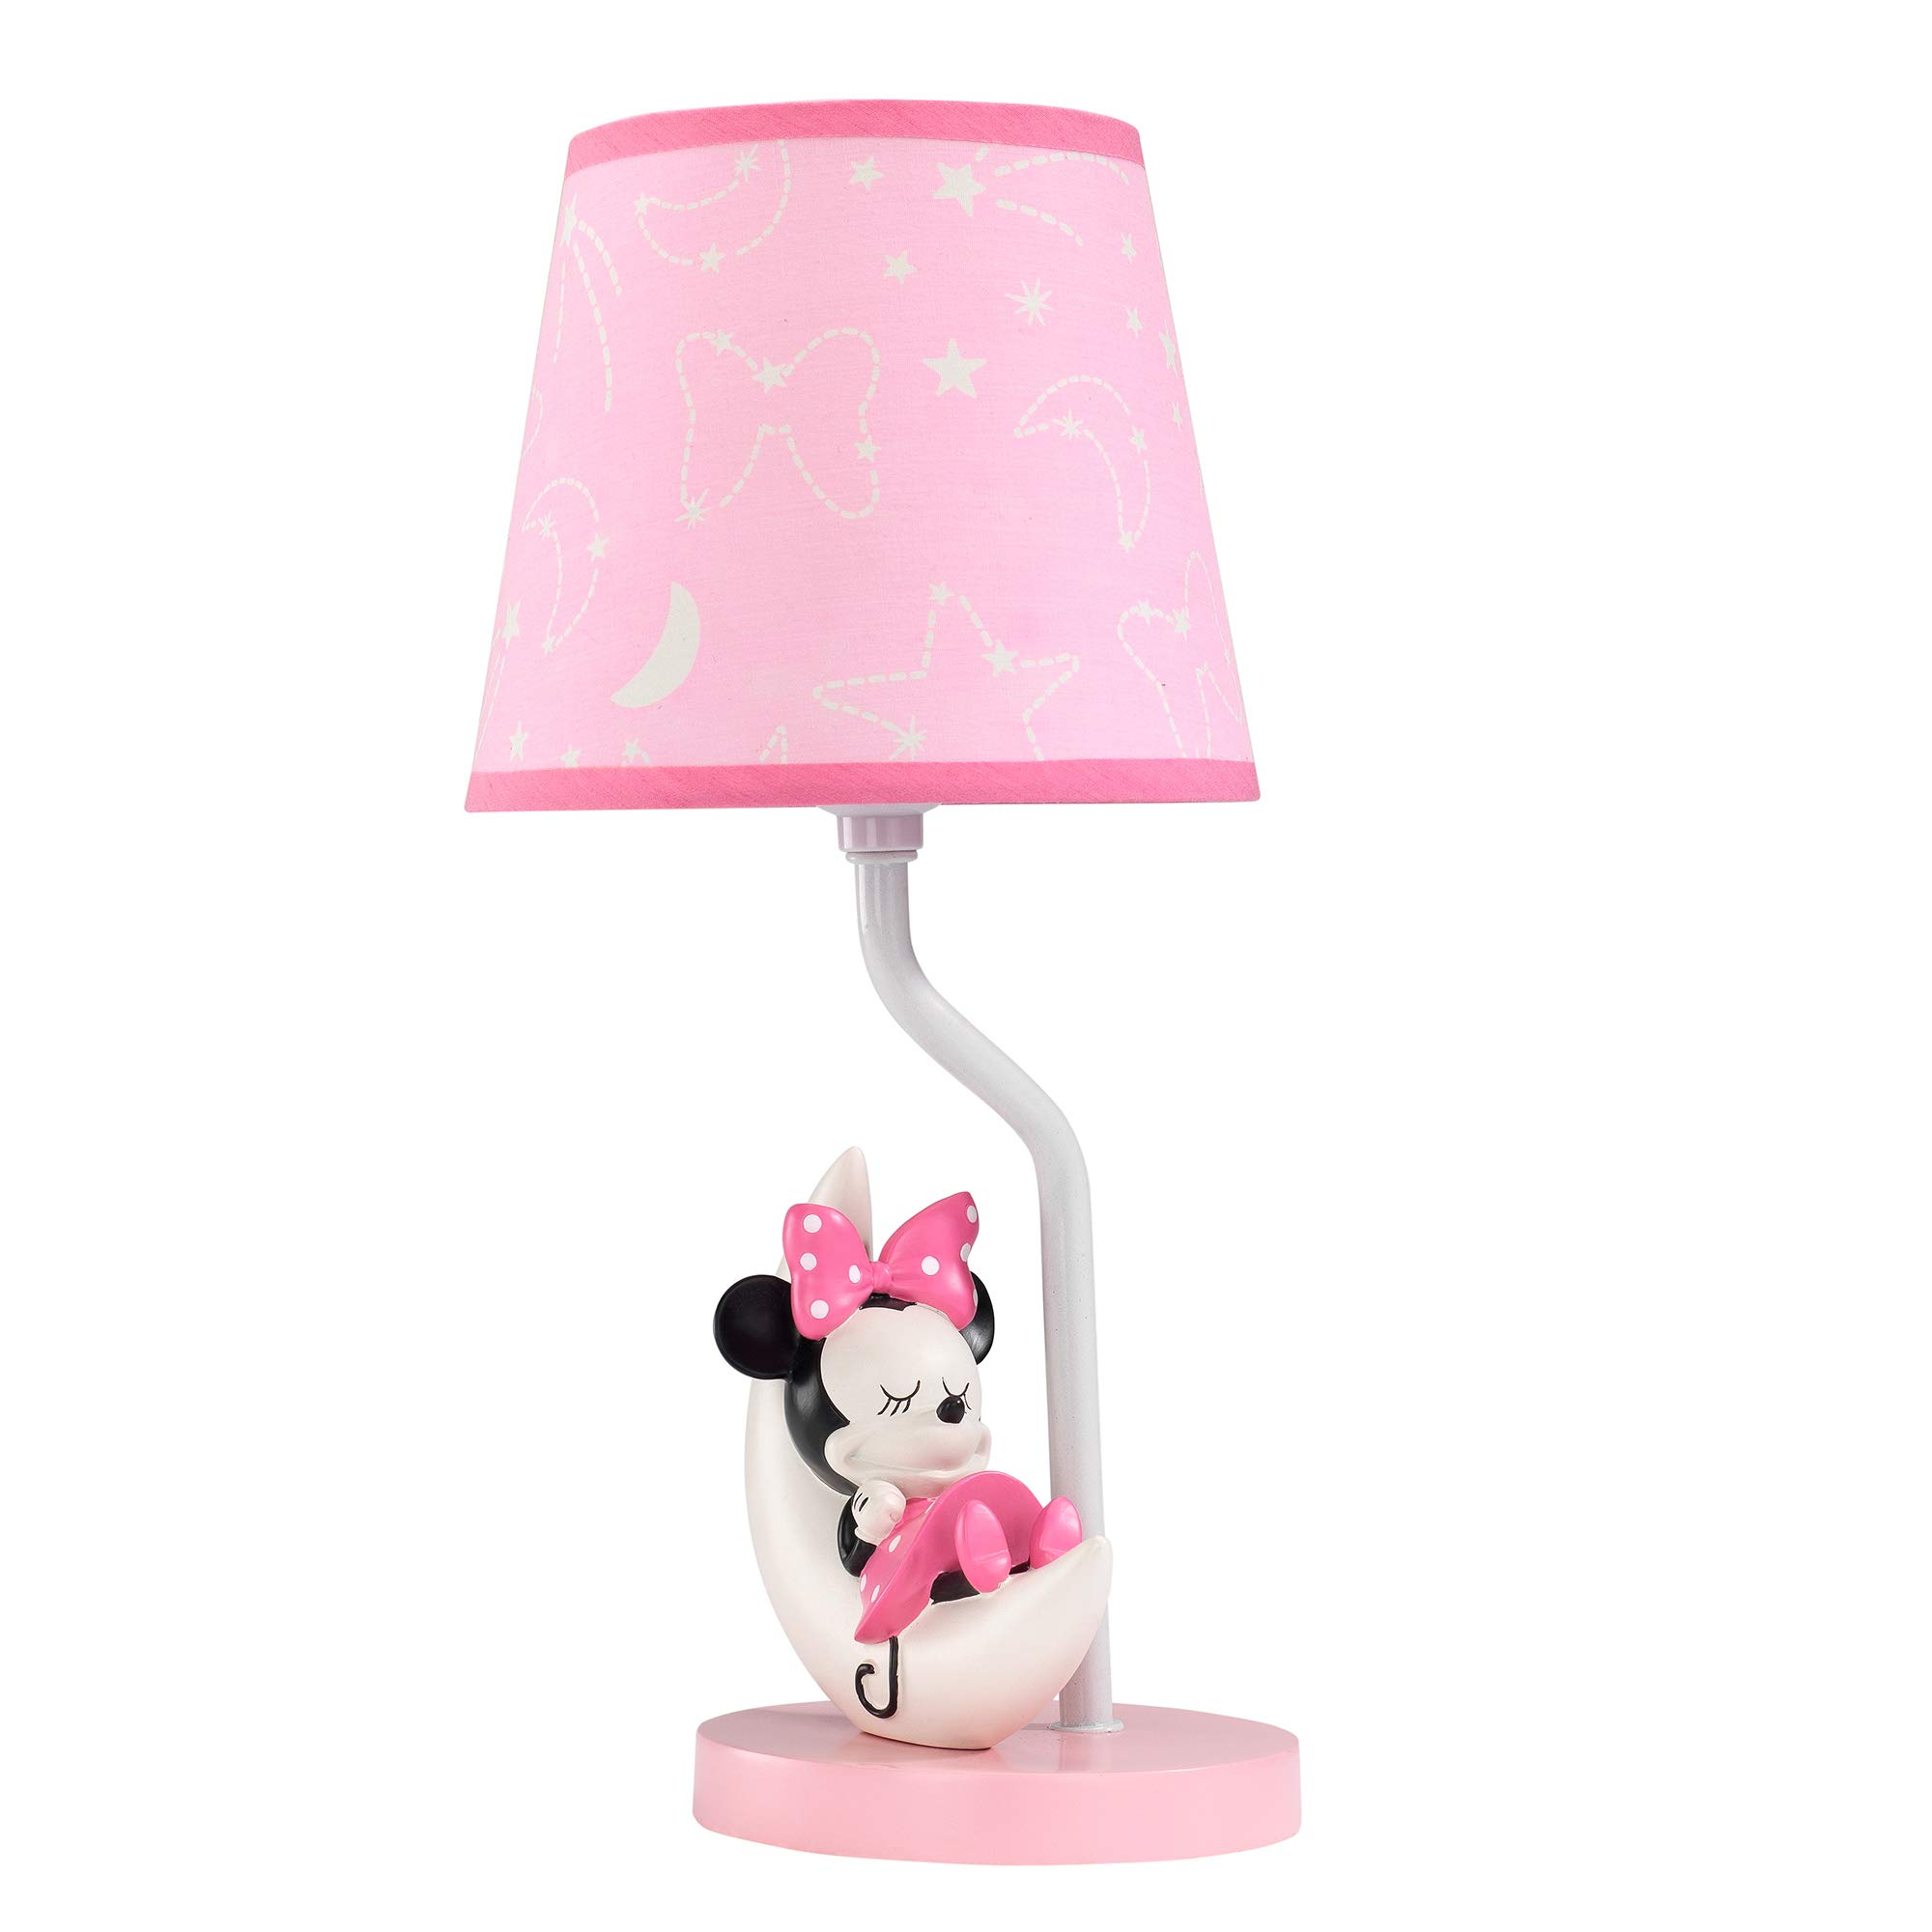 Lambs & Ivy Disney Baby Minnie Mouse Celestial Lamp with Shade & Bulb, Pink